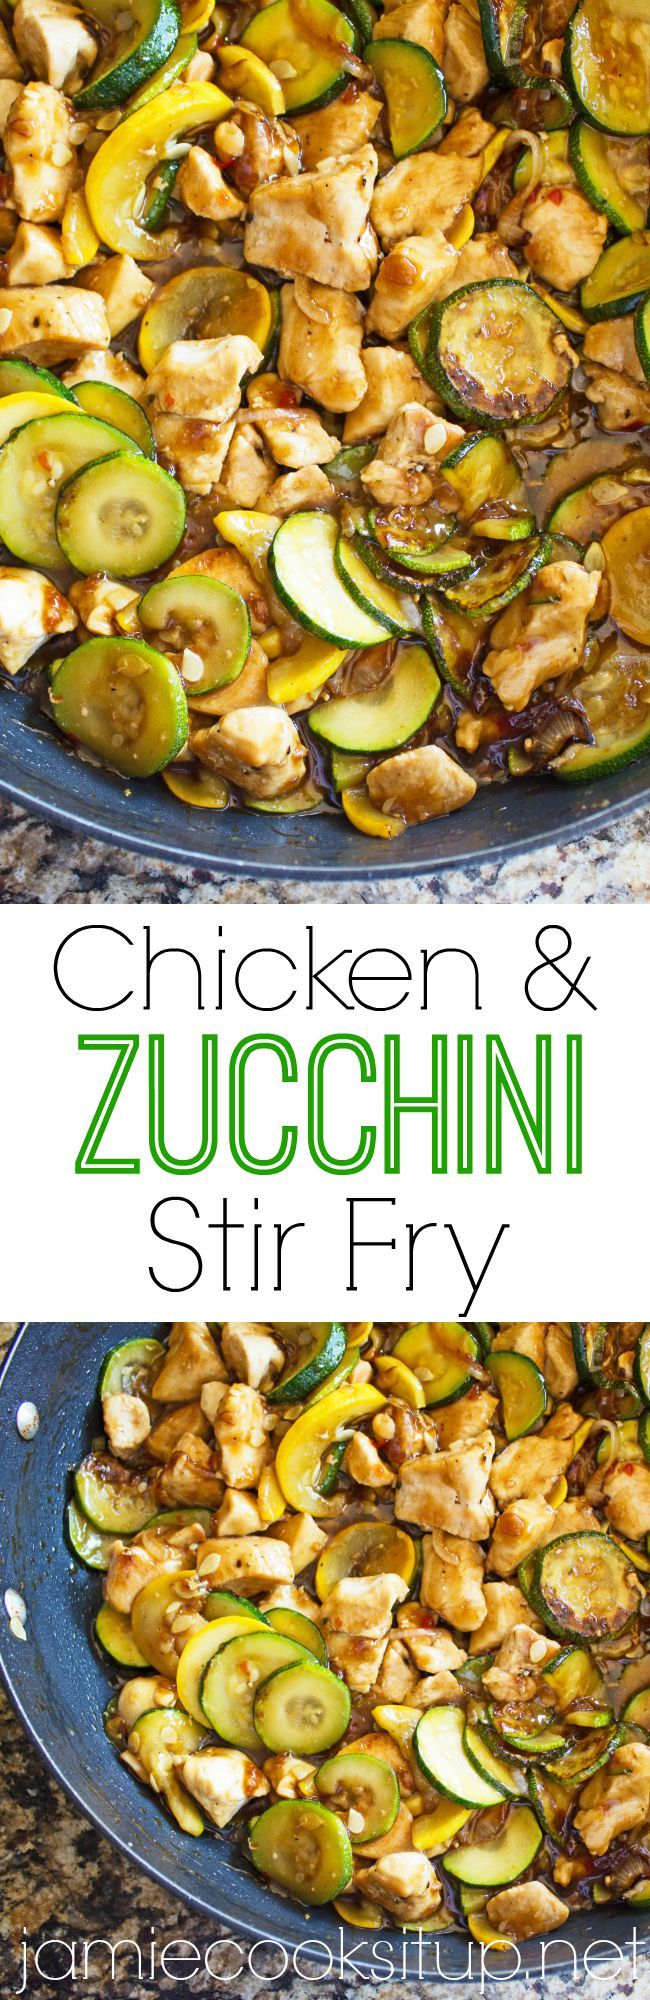 Chicken and Zucchini Stir Fry Jamie Cooks It Up!! A great, healthy way to use up that garden zucchini!